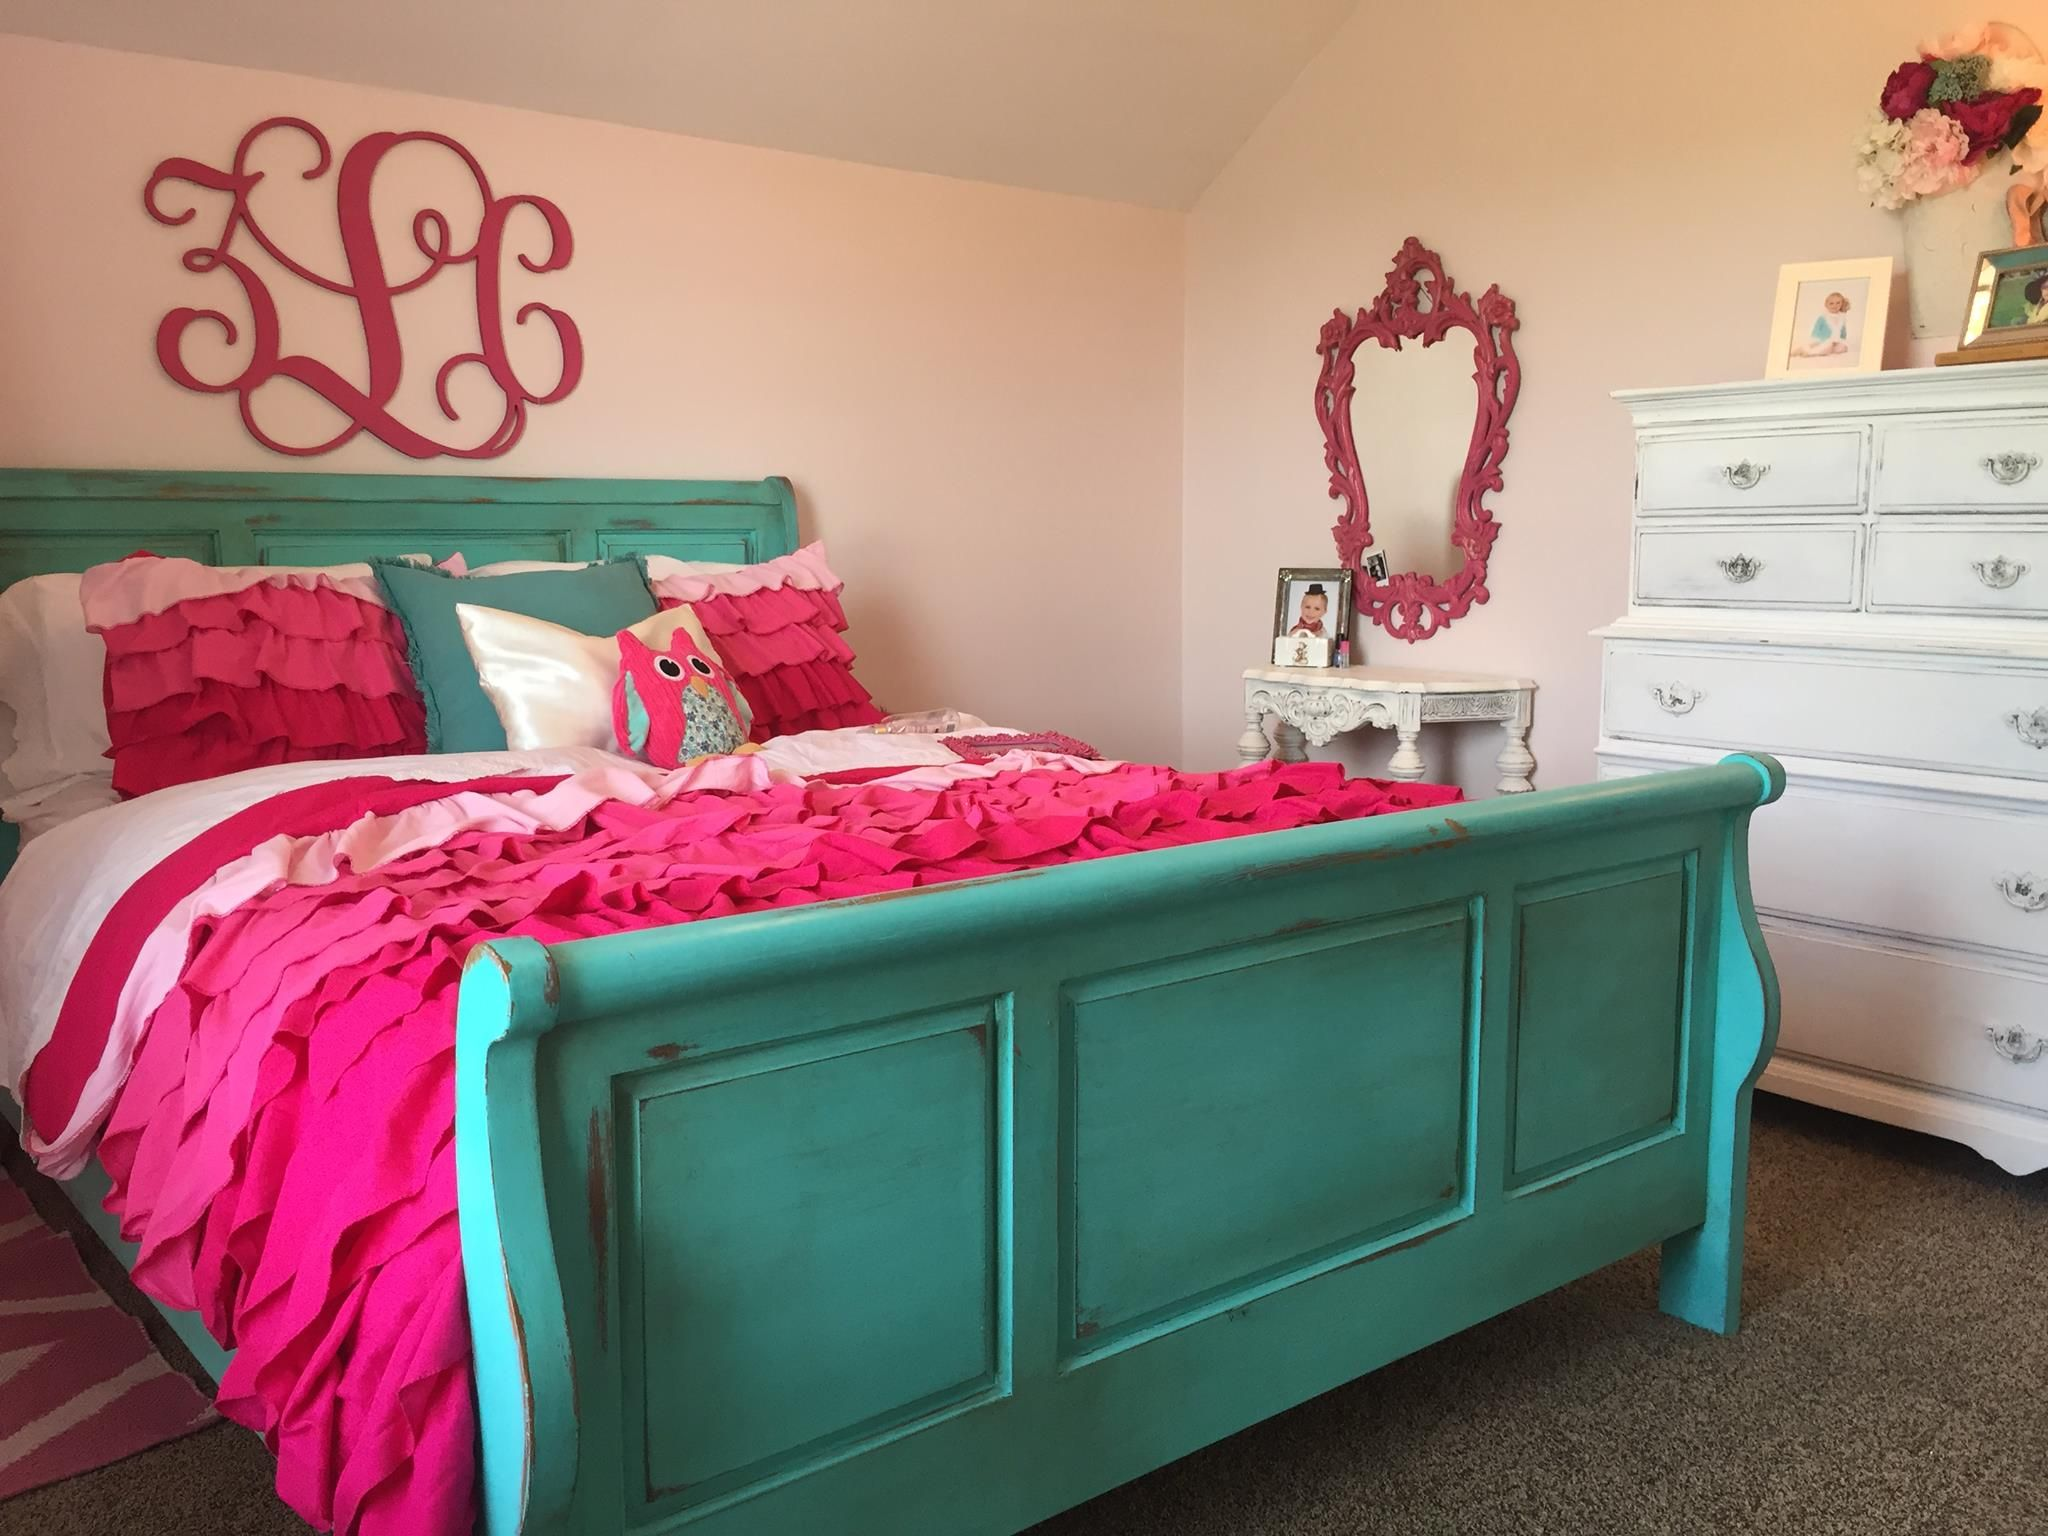 Santa Fe Bedroom Furniture Love This Santa Fe Turquoise Color From Cece Caldwells Paints